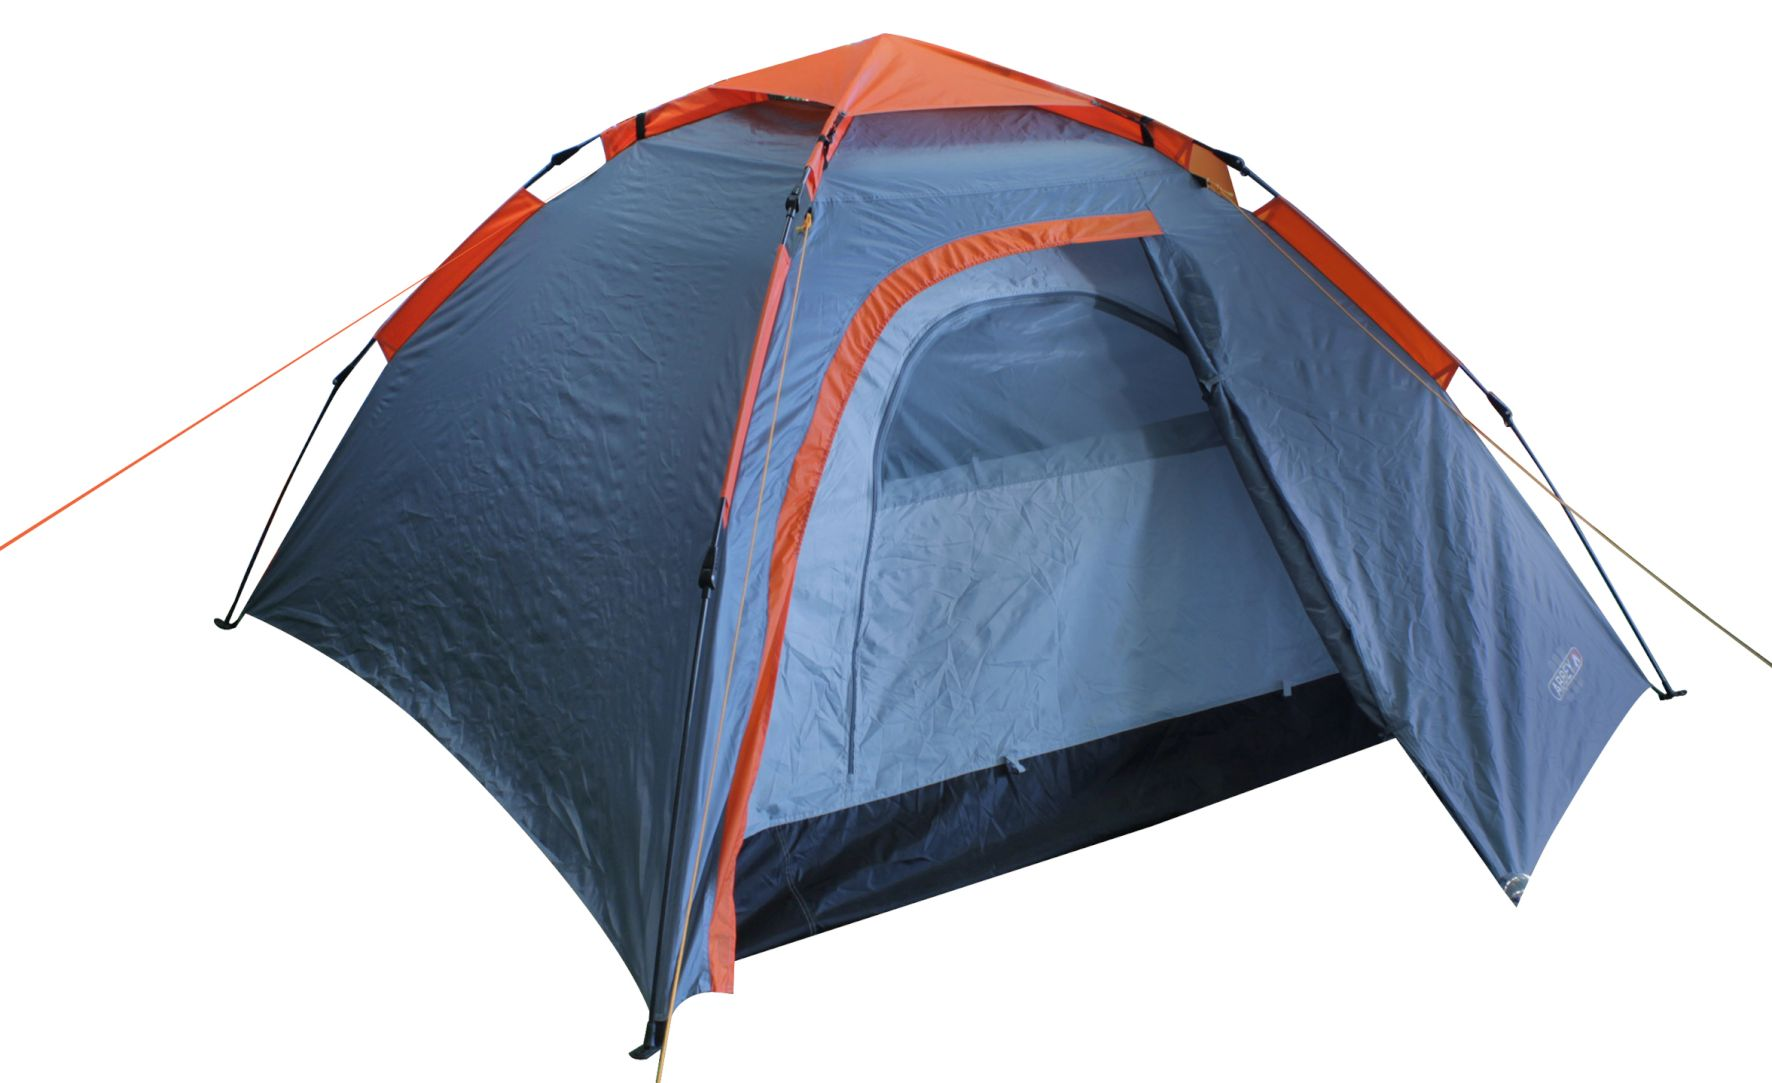 Tent Easy-up Systeem • 2-Persoons •